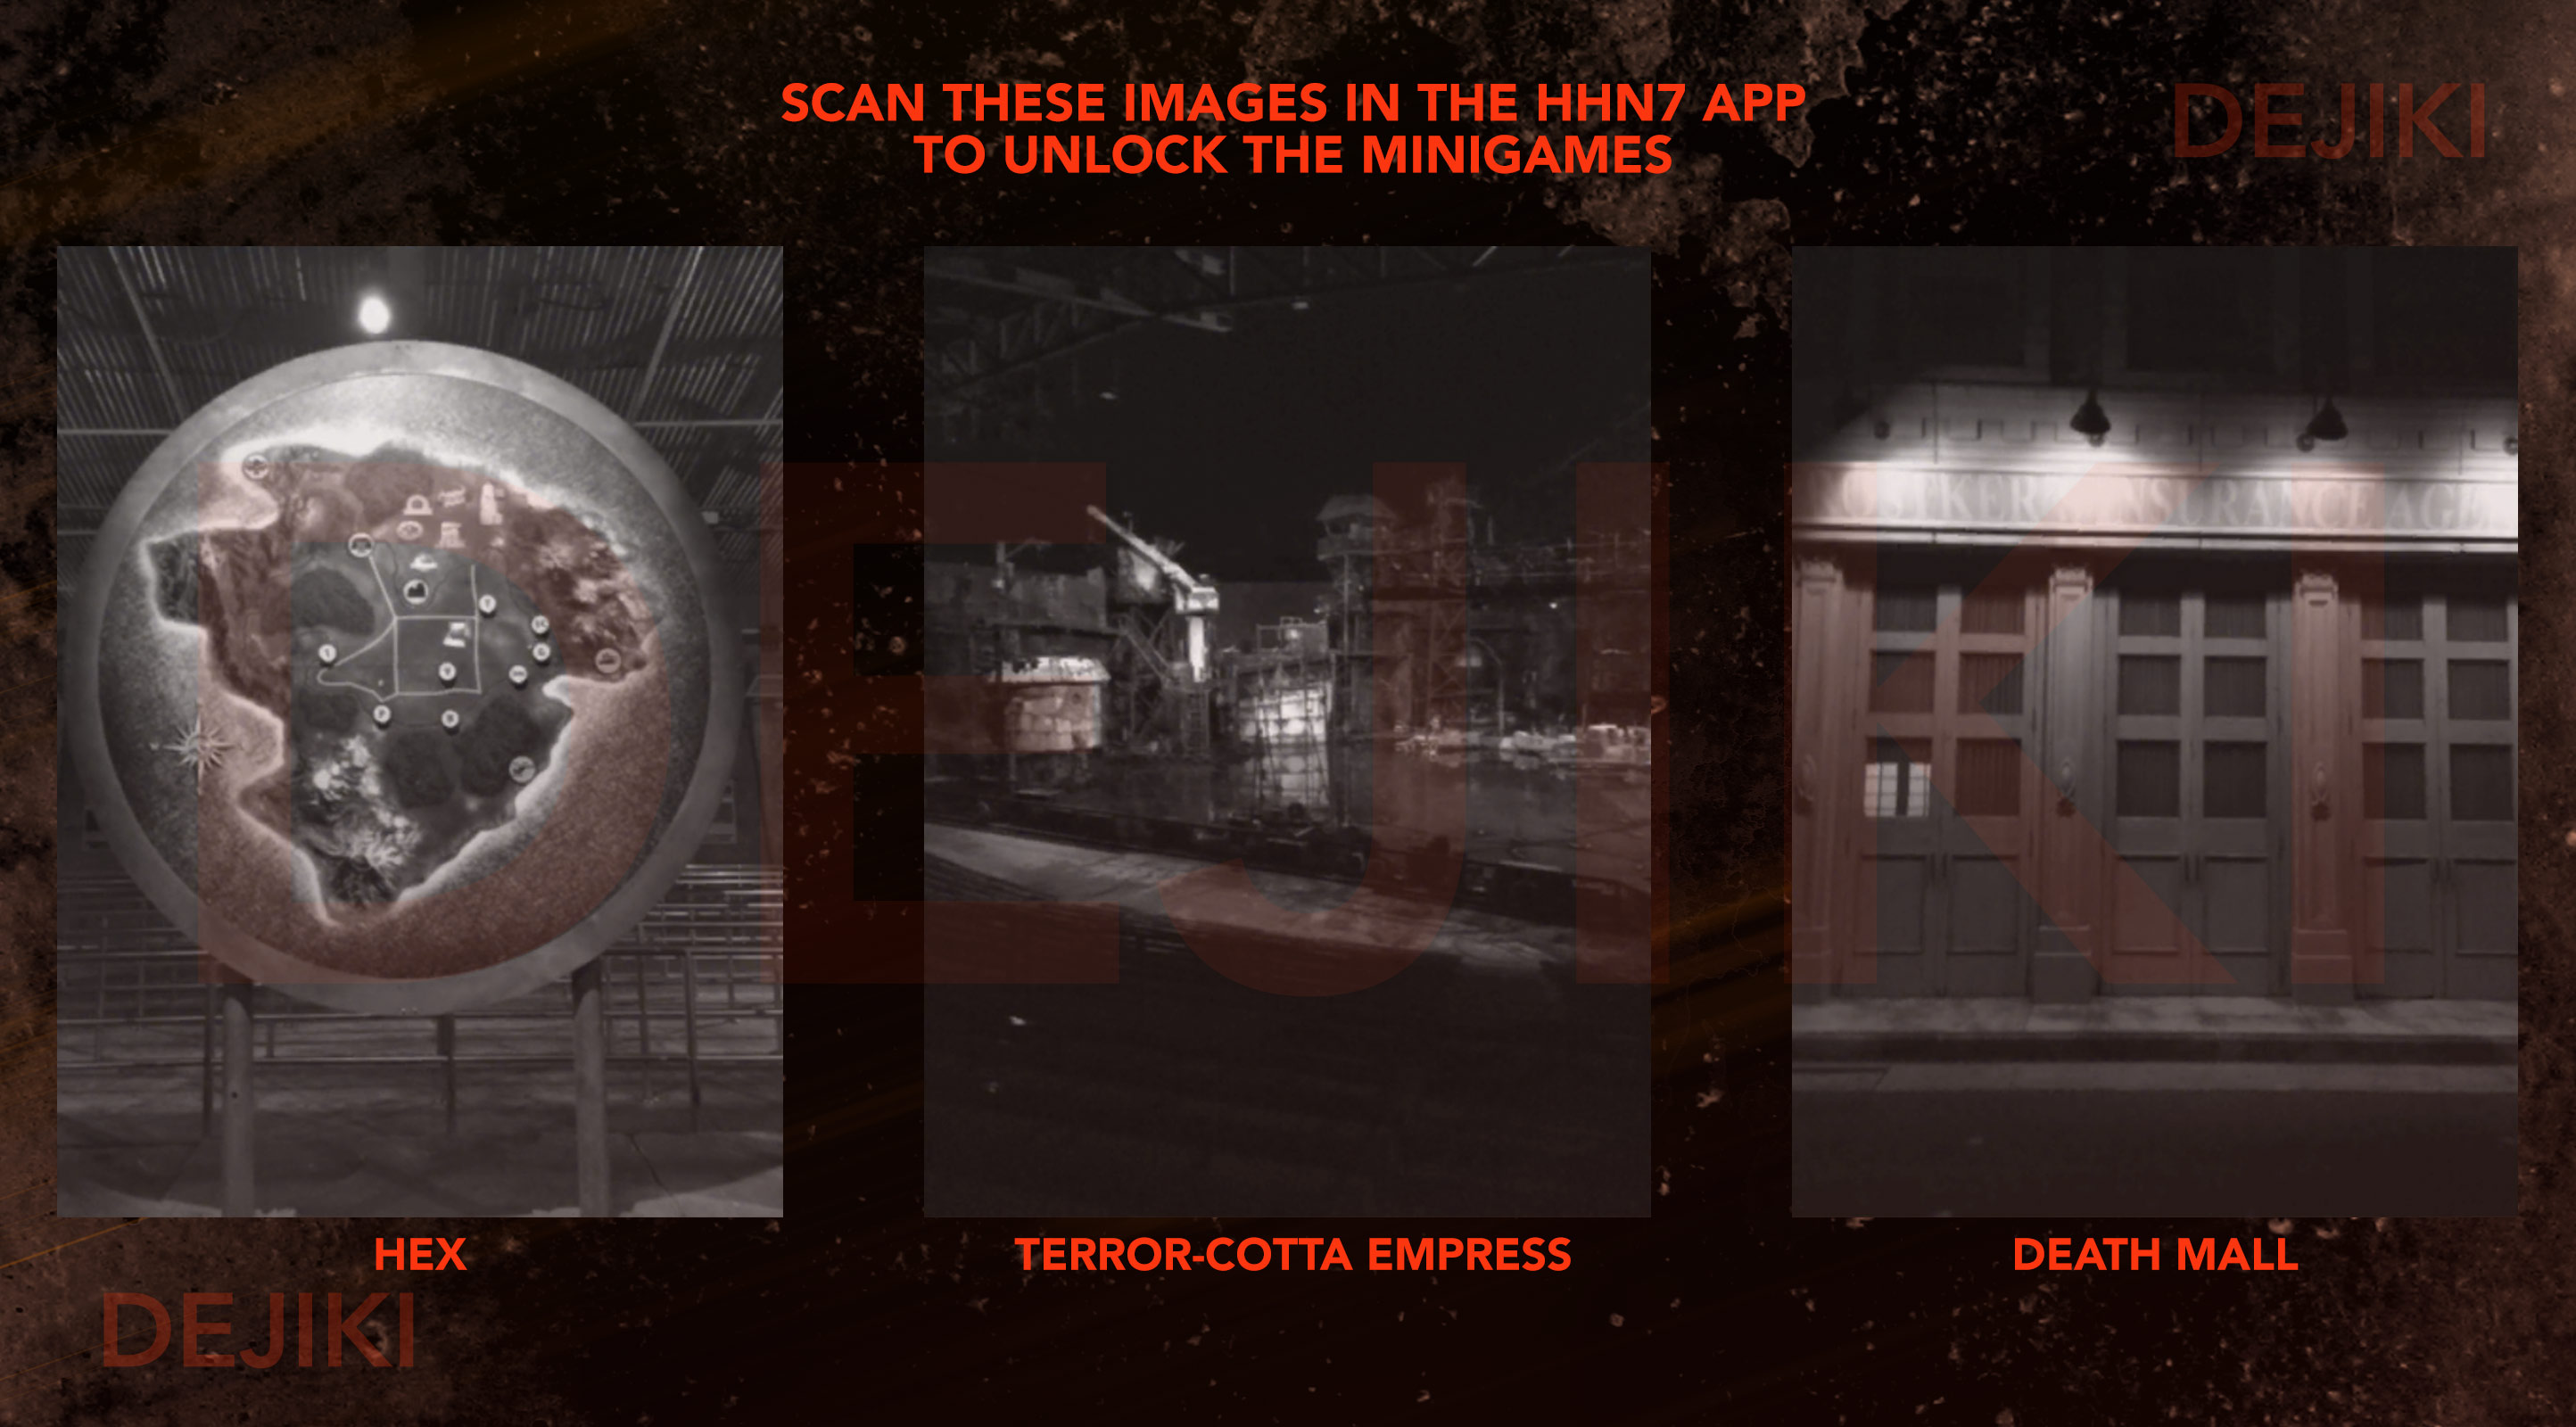 Halloween Horror Nights 7 Survival Guide Tips & Tricks - Cheat method to easily unlock all 3 minigames in the HHN7 App